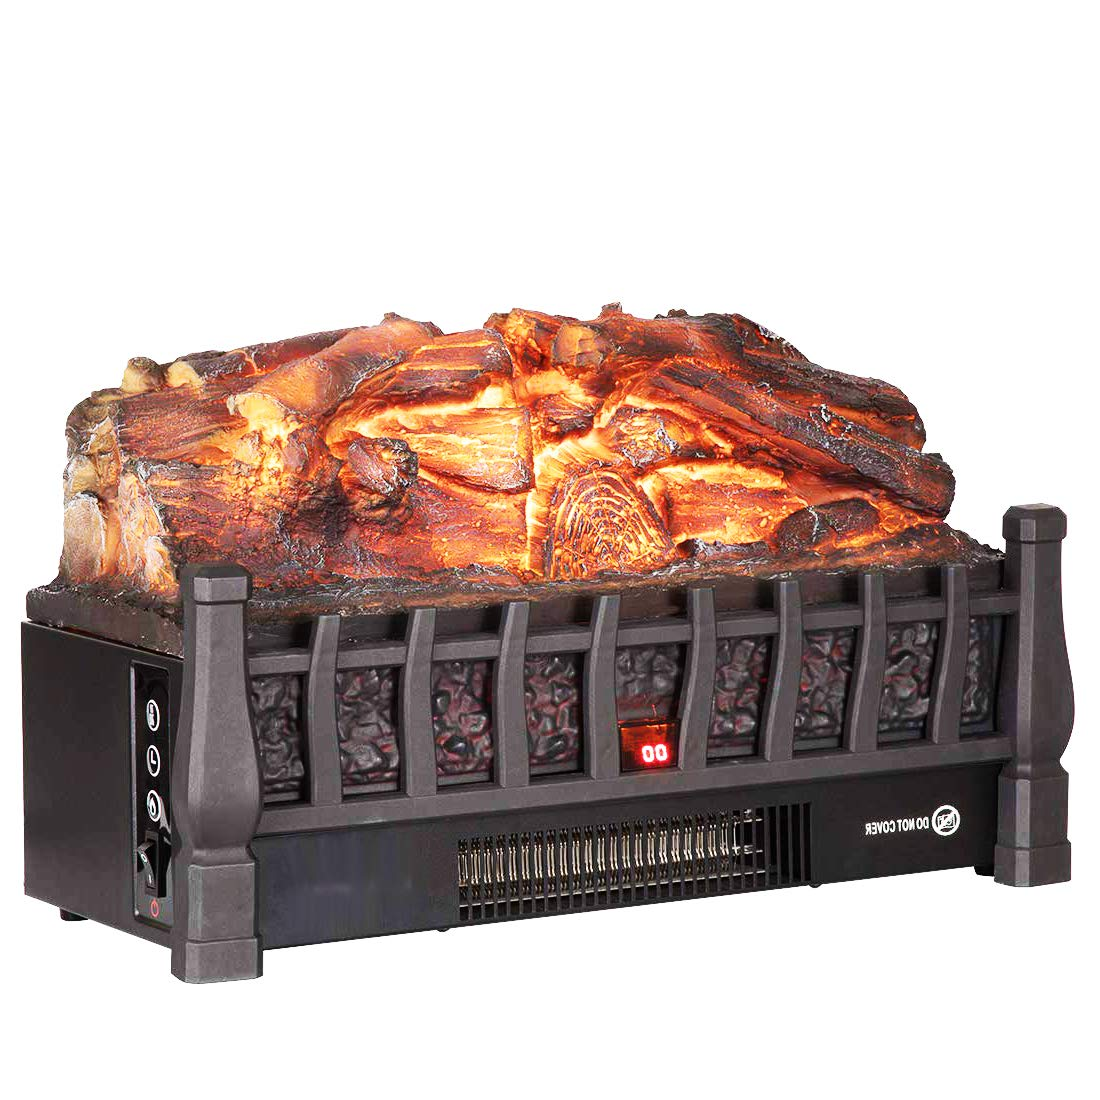 Regal Flame 20 Inch Electric Fireplace Log Realistic Ember Bed Insert with Heater in Oak by Regal Flame